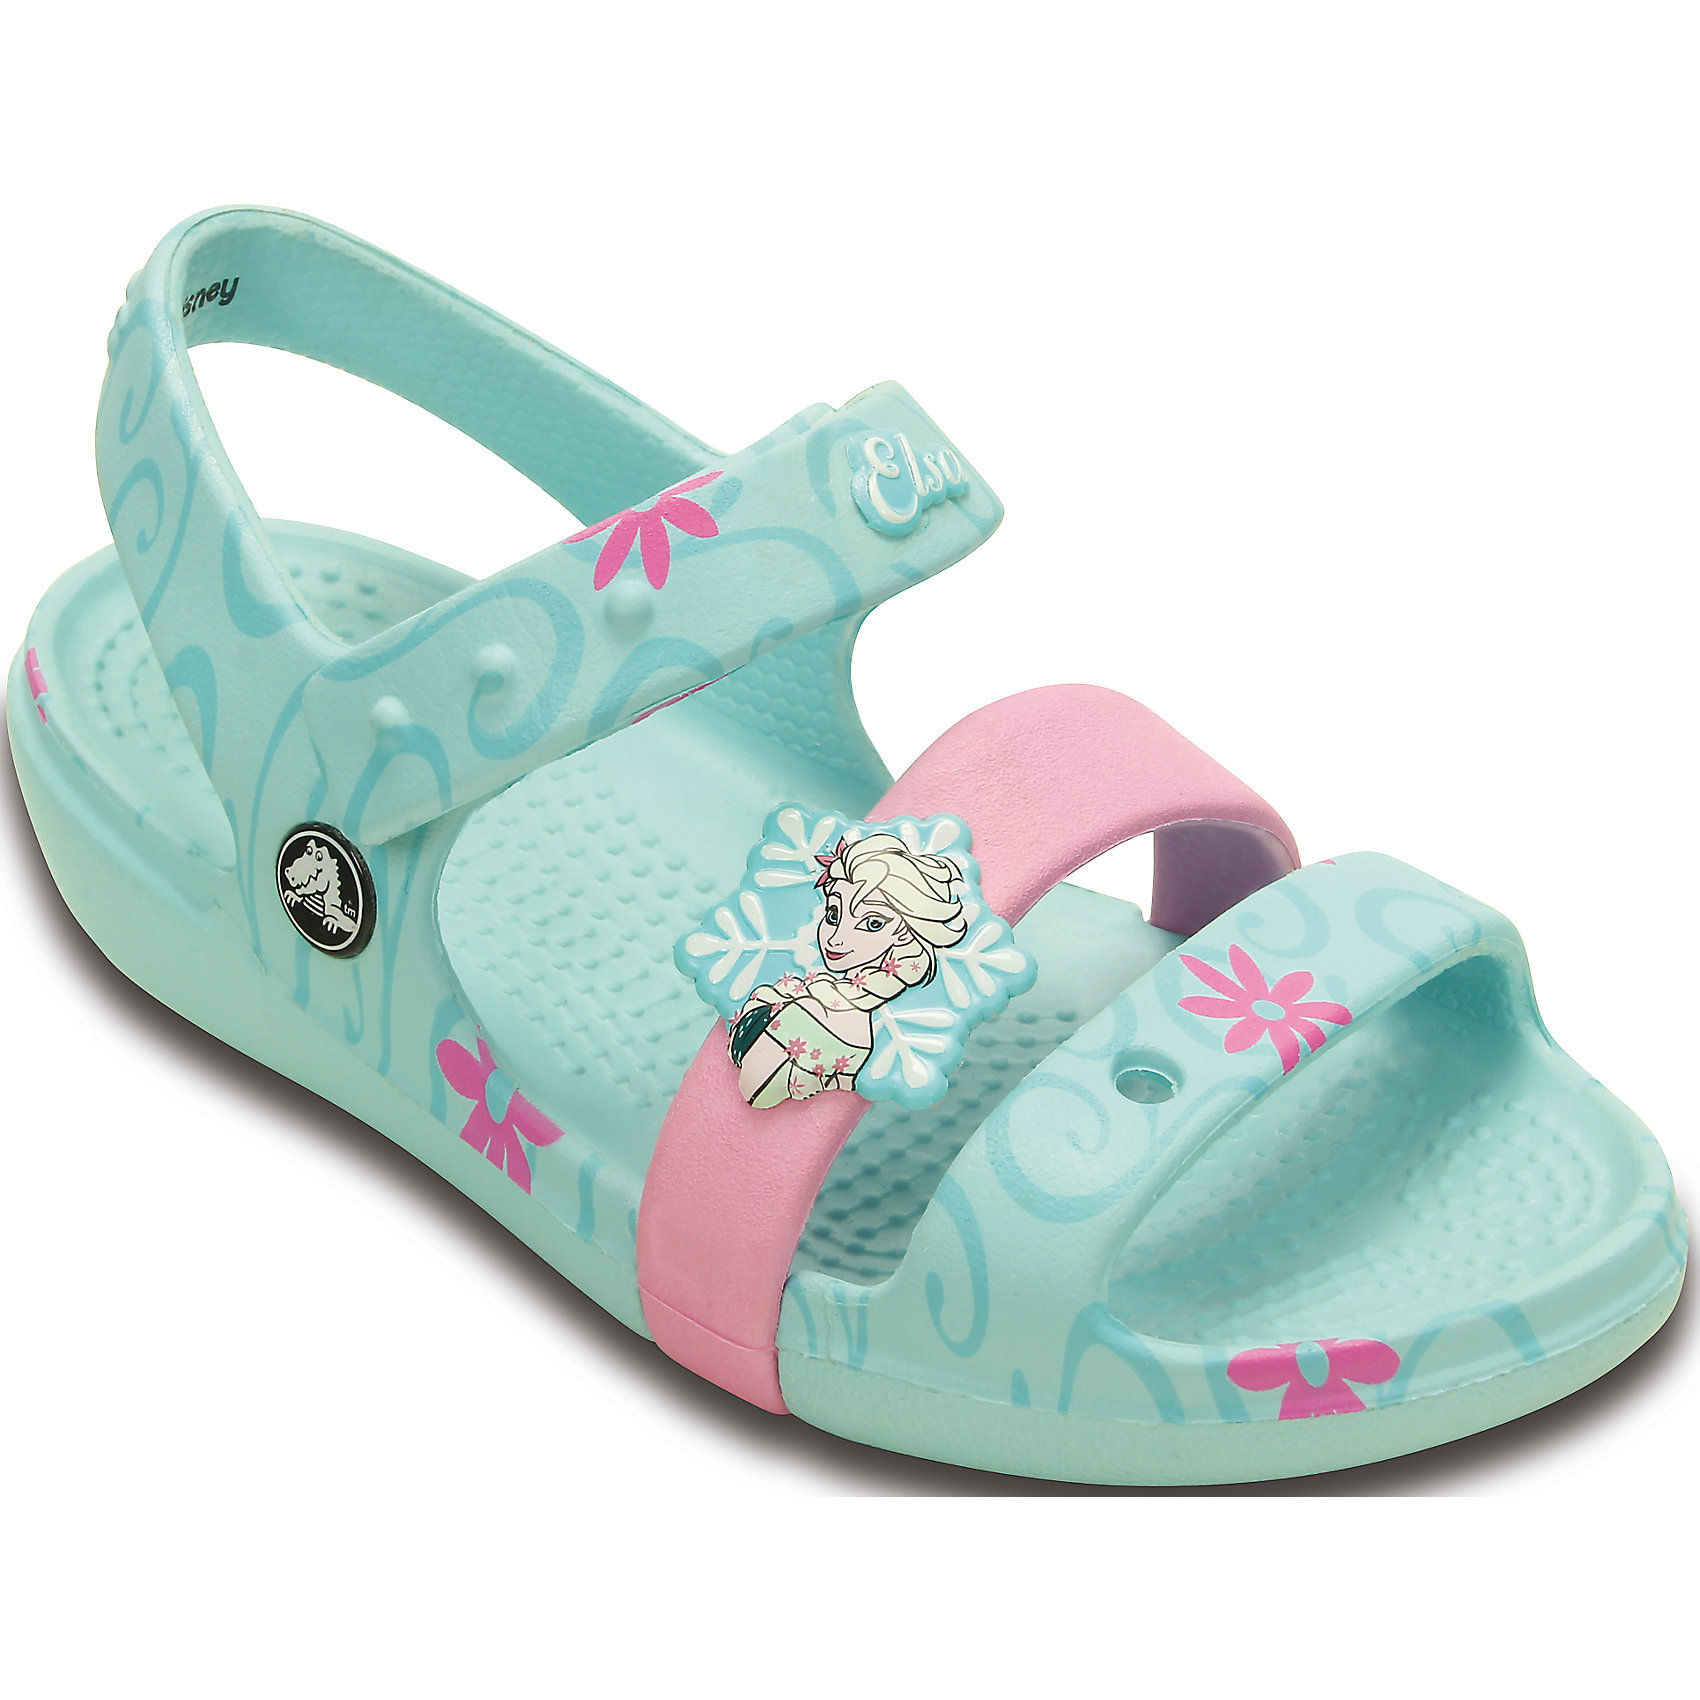 crocs Сандали Keeley Frozen Fever Sandal K для девочки CROCS сандали zaxy сандали